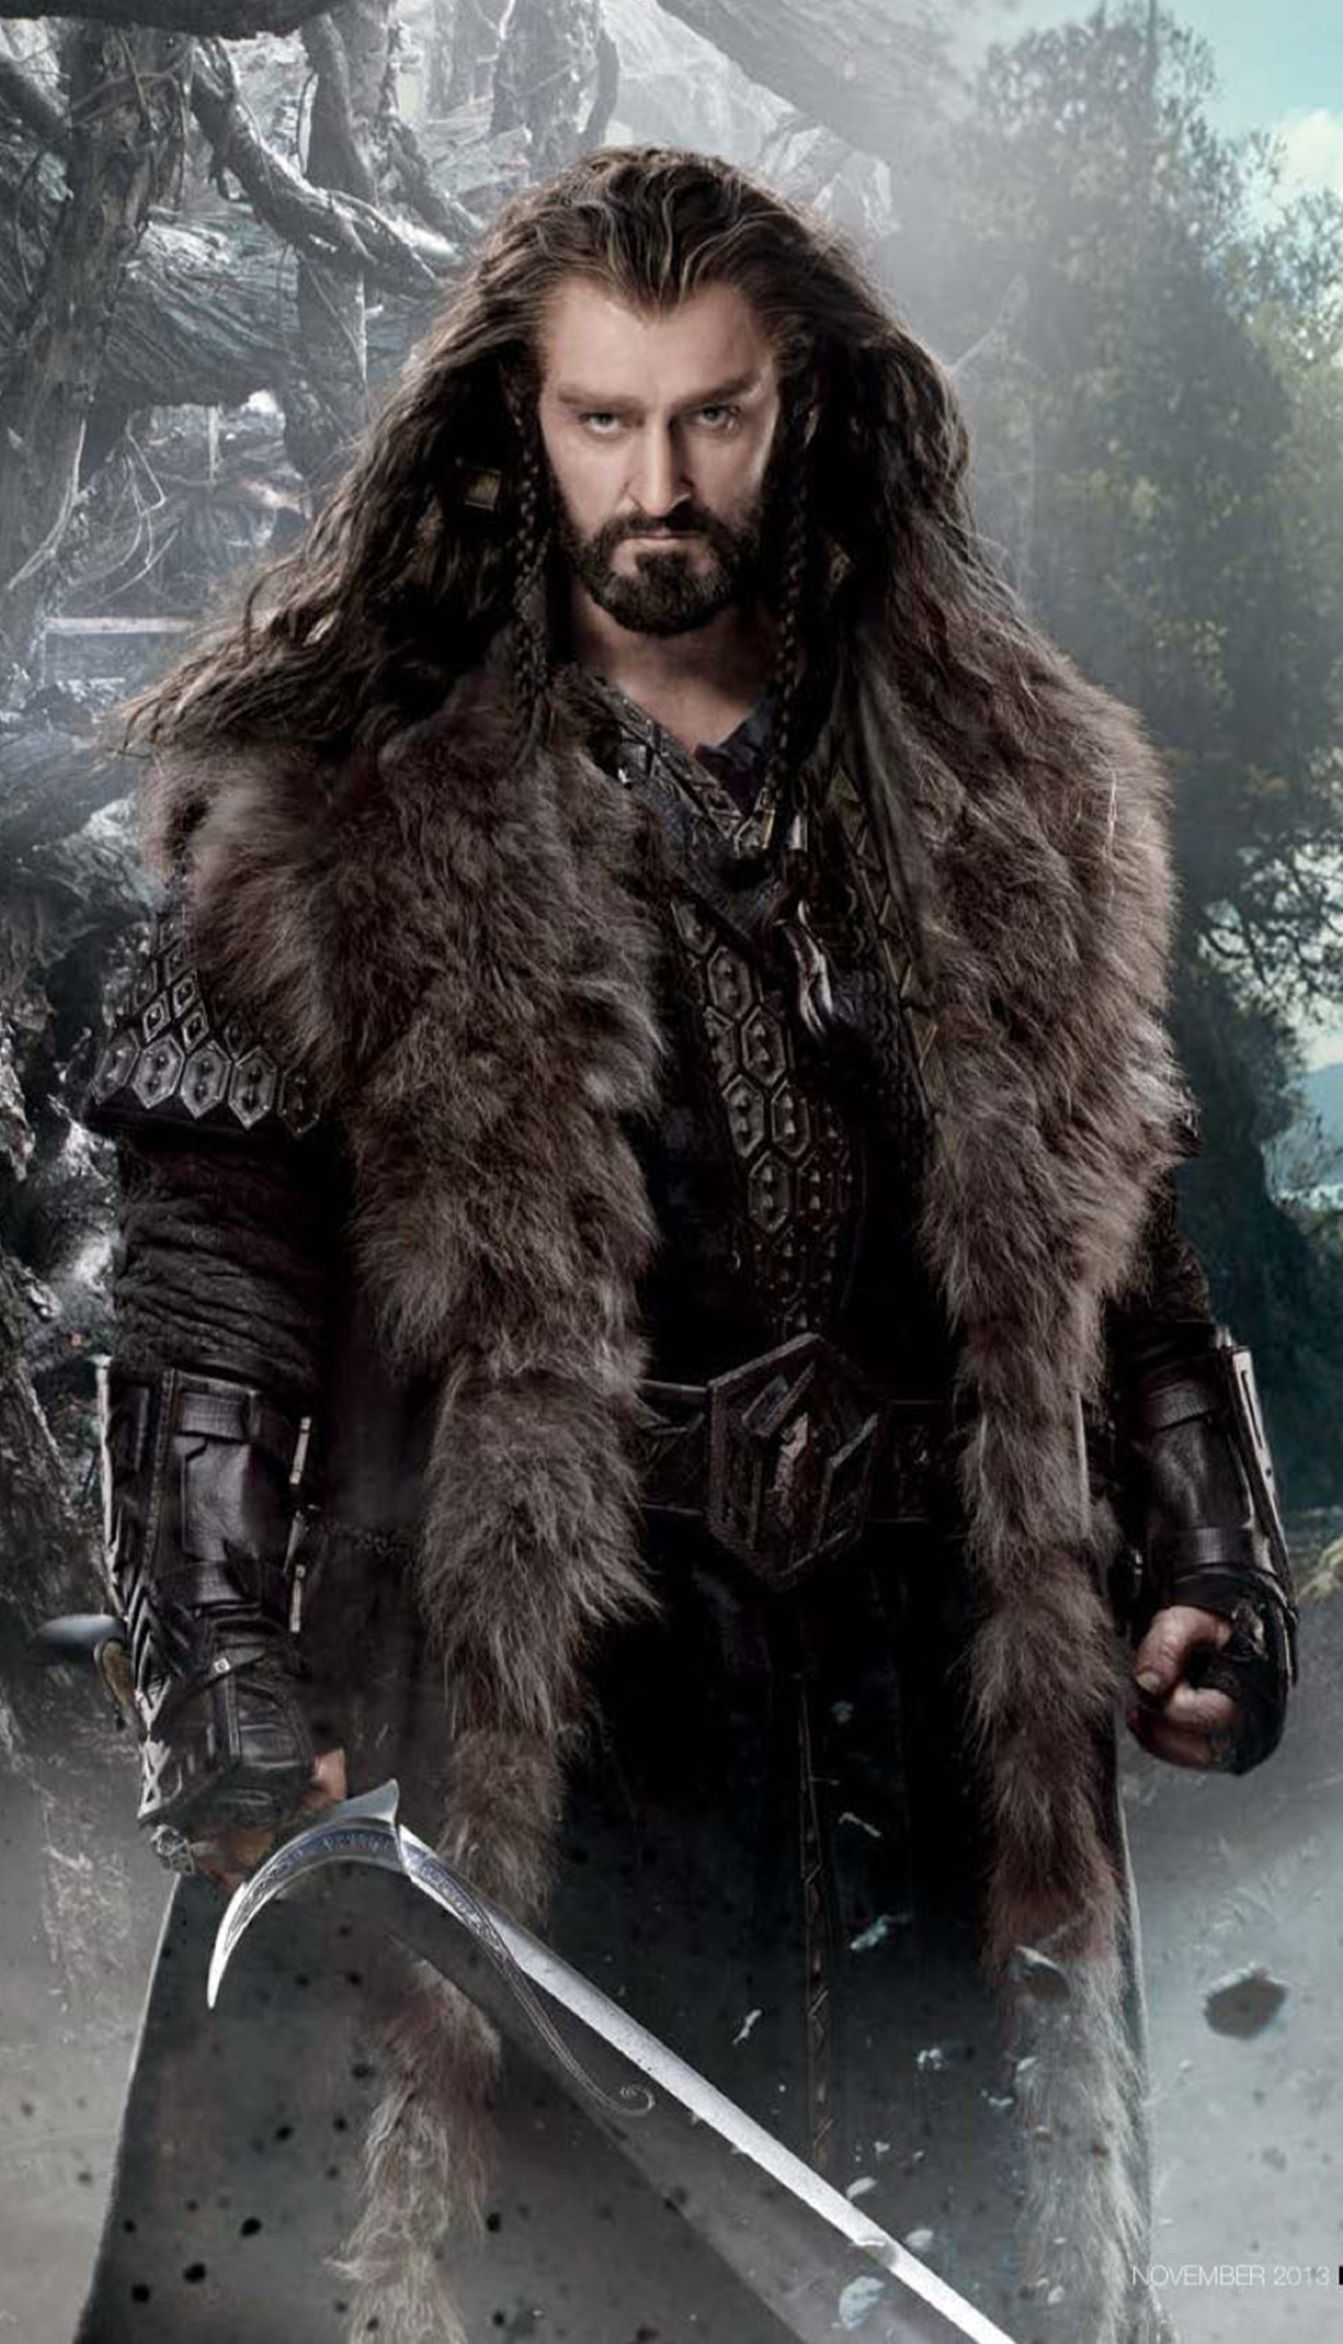 It seems like there's a lot of Thorin here, lately